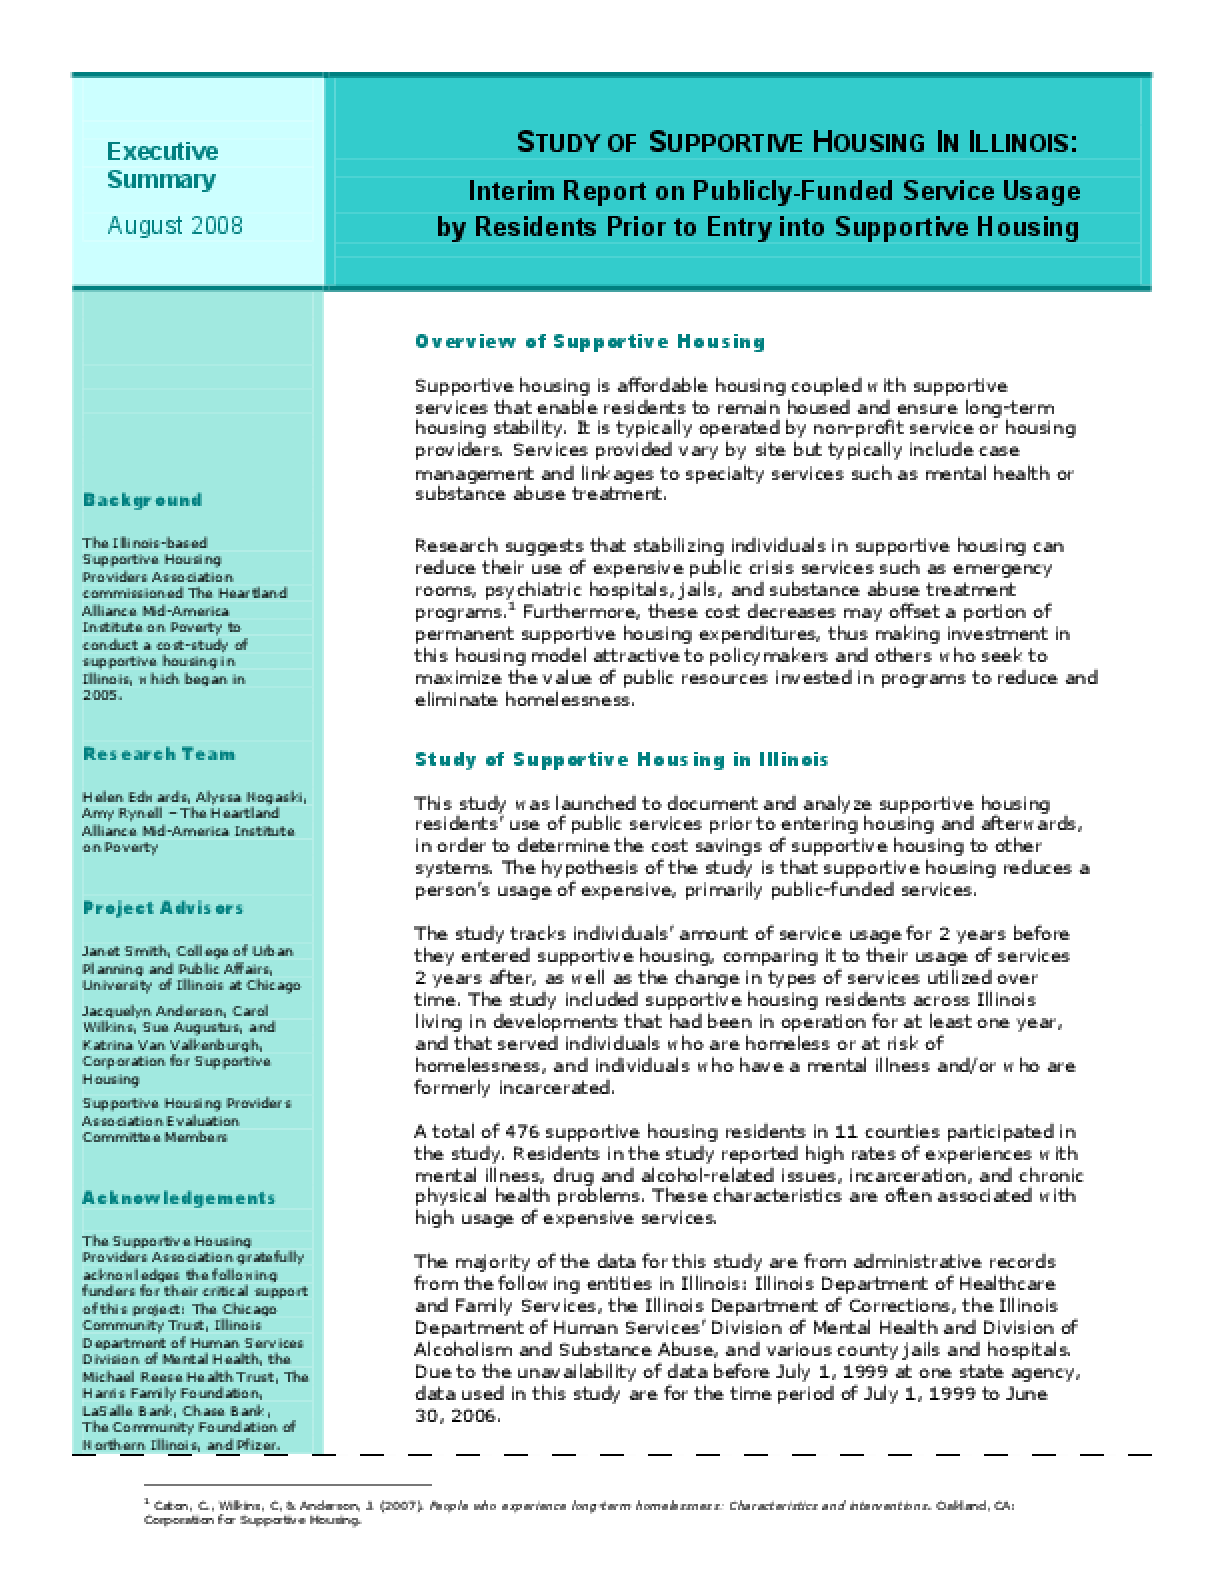 Study of Supportive Housing in Illinois: Interim Report on Publicly-Funded Service Usage by Residents Prior to Entry into Supportive Housing